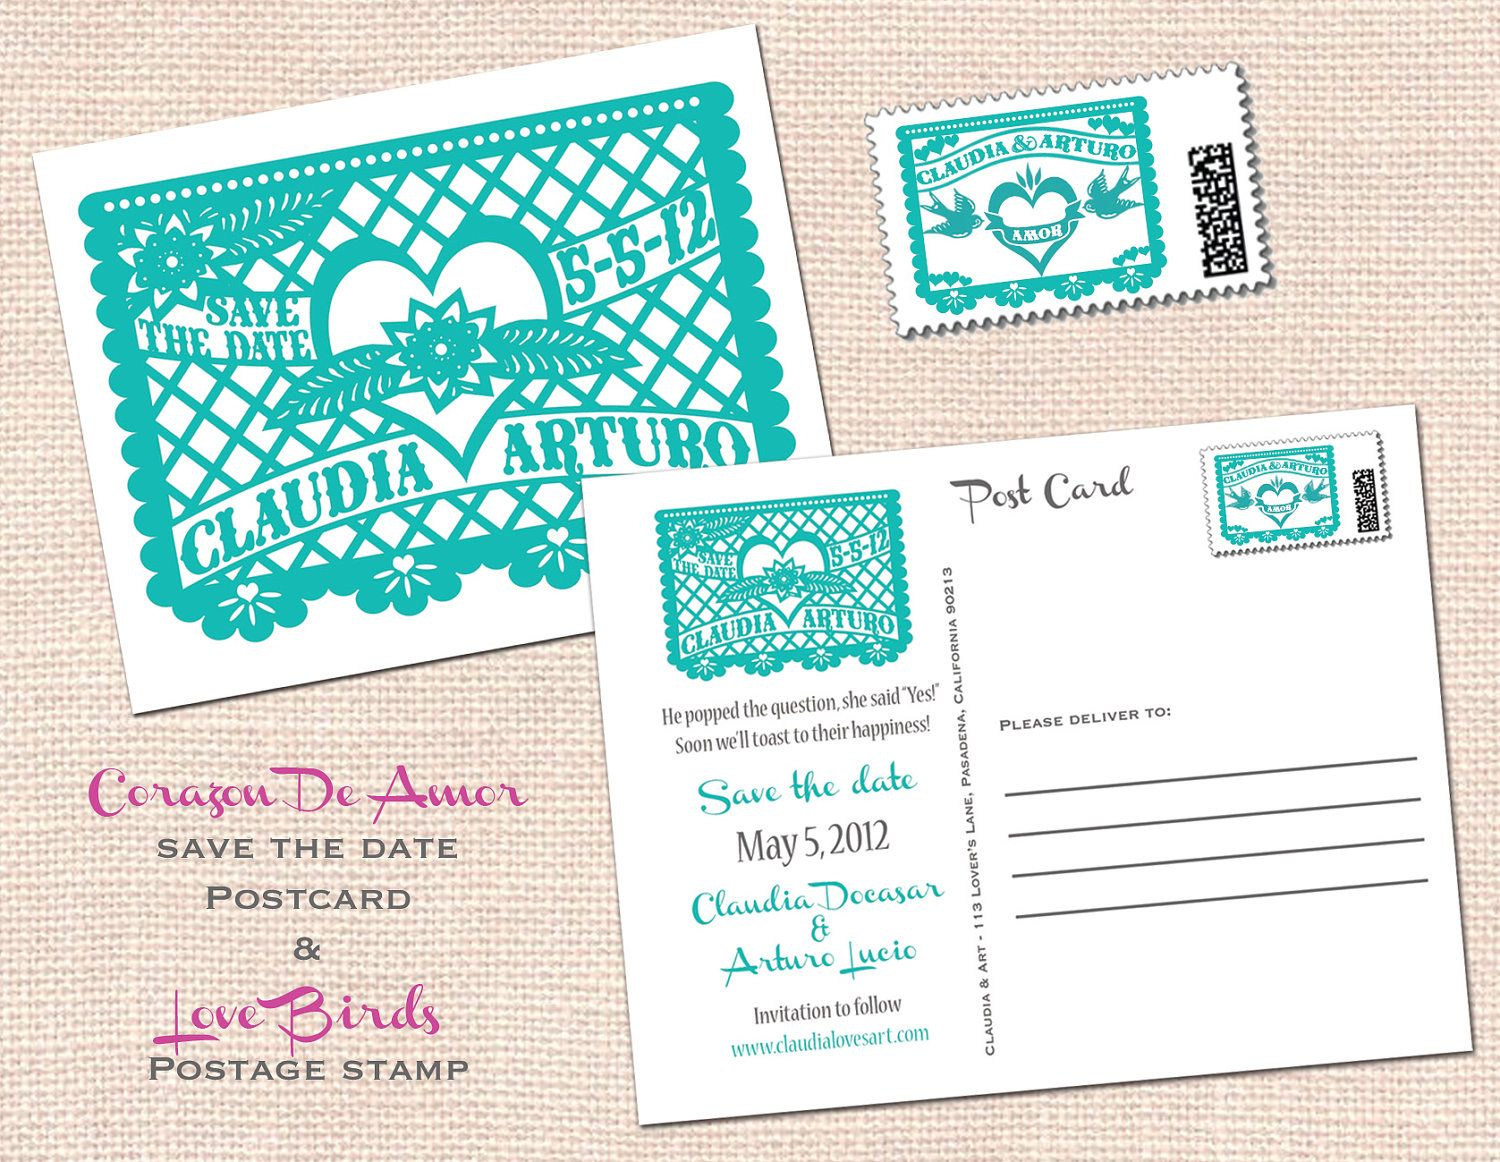 so pretty and simple! corazon de amor save the date postcard papel, Wedding invitations